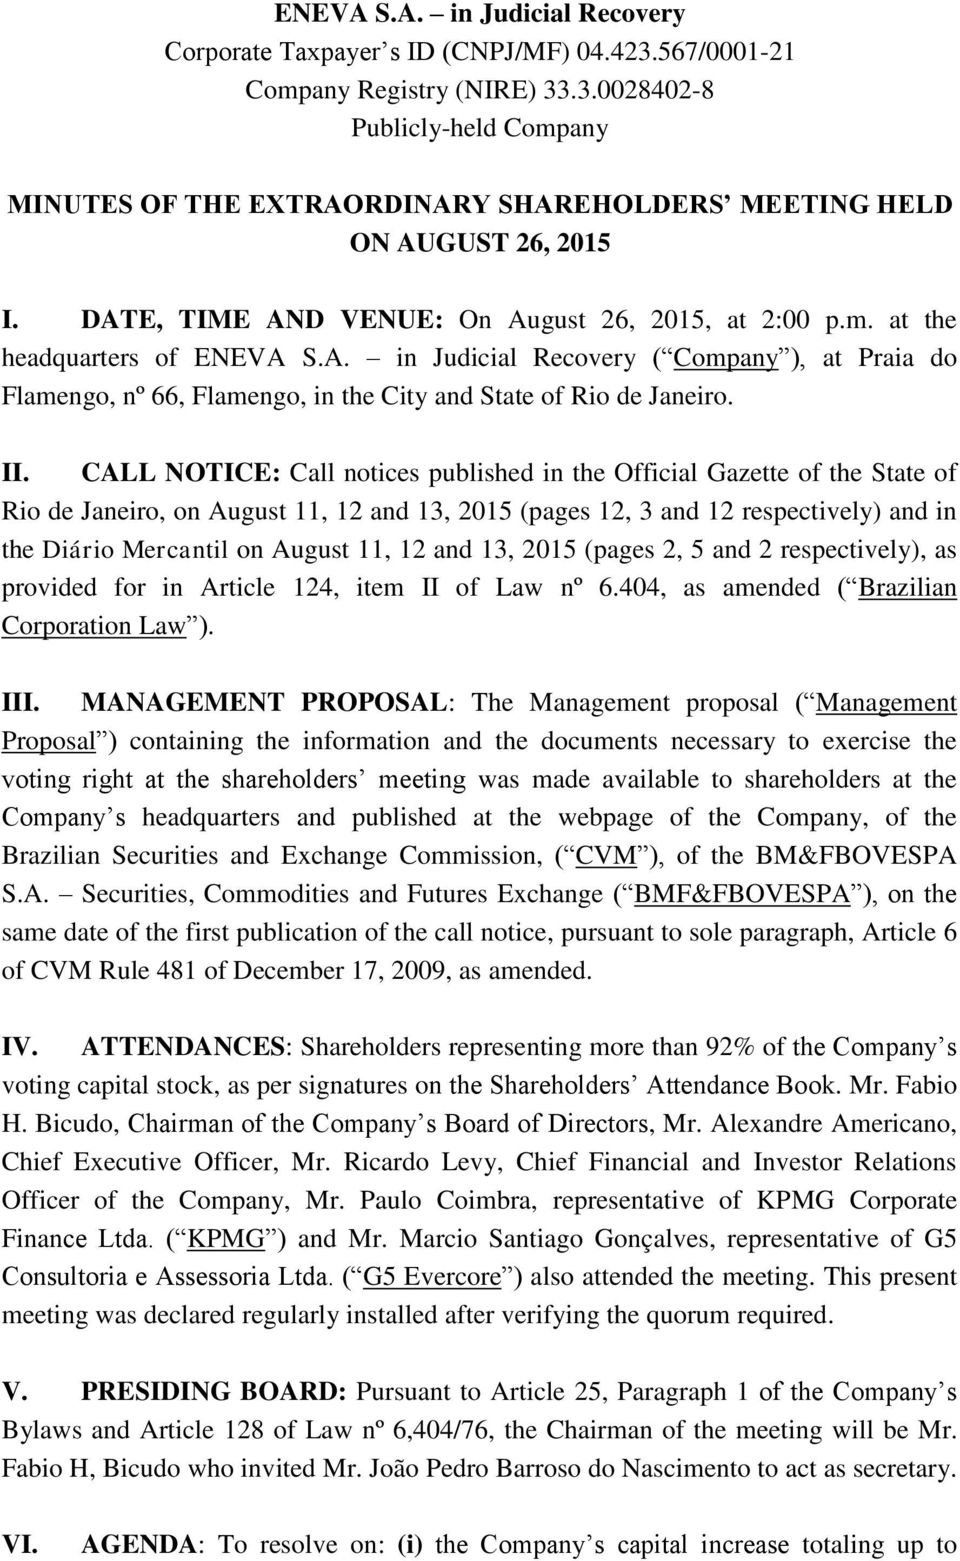 II. CALL NOTICE: Call notices published in the Official Gazette of the State of Rio de Janeiro, on August 11, 12 and 13, 2015 (pages 12, 3 and 12 respectively) and in the Diário Mercantil on August